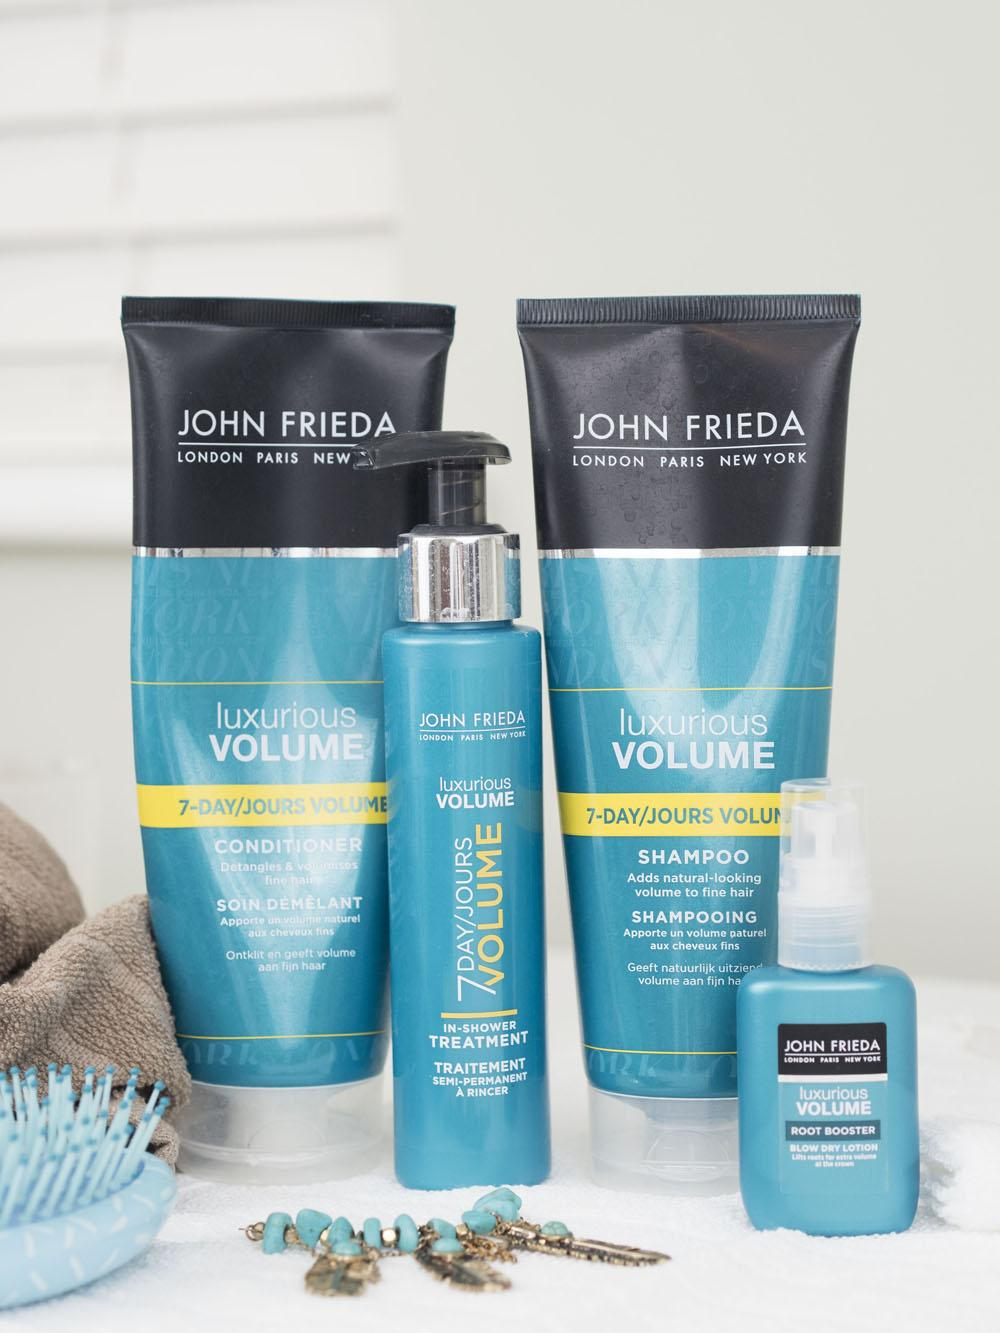 My Winter Favourites For Healthy Hair - John Frieda Luxurious Volume